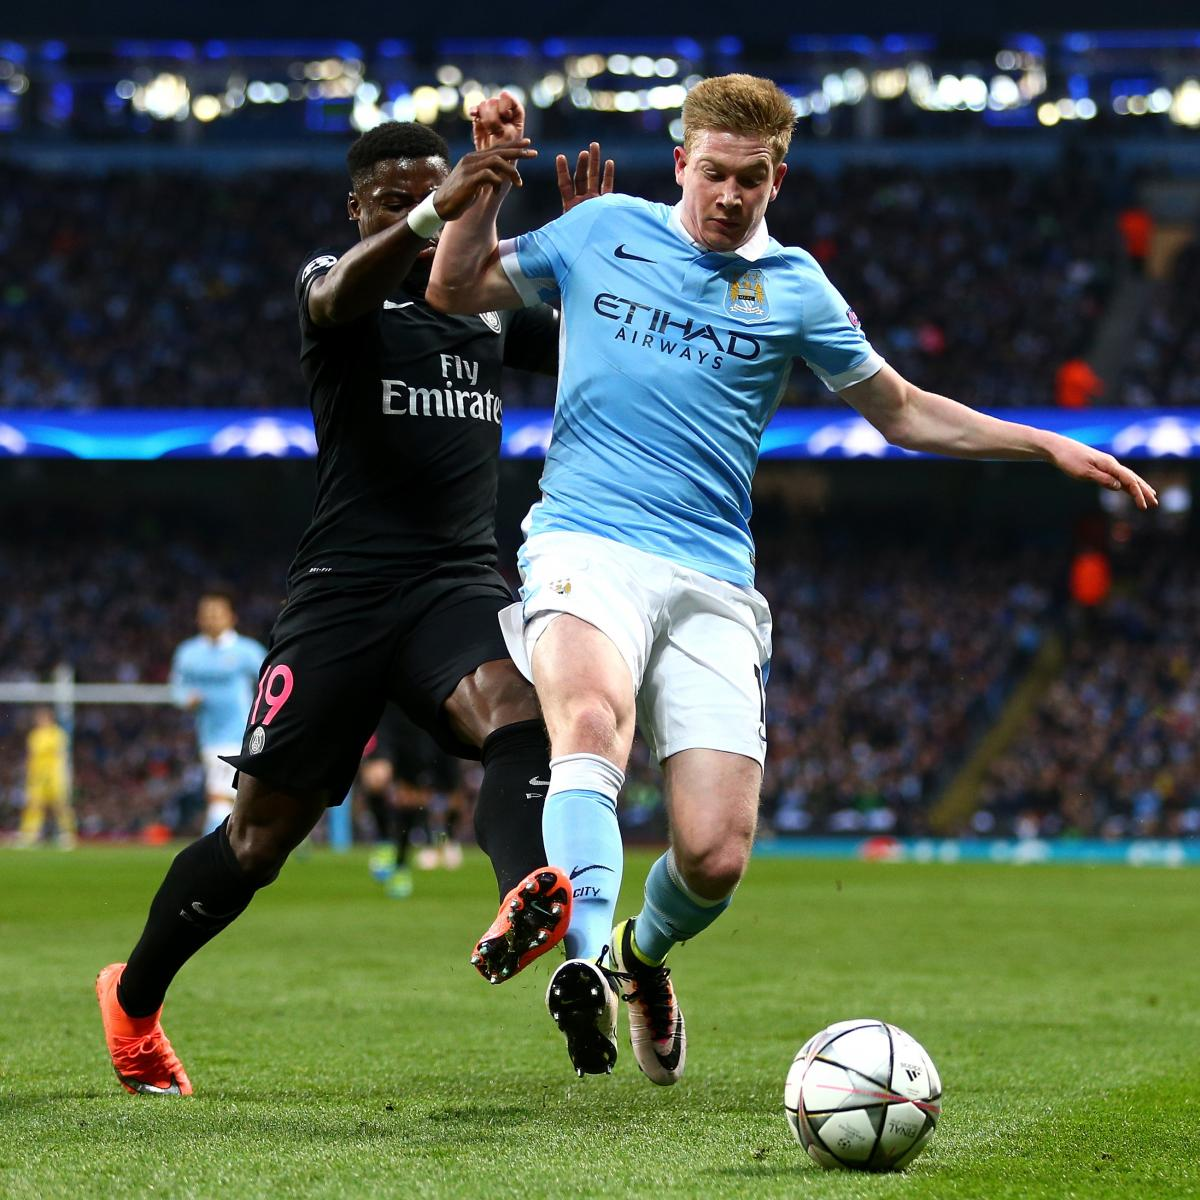 Arsenal Vs Psg Score Reaction From 2016 Champions: Manchester City Vs. PSG: Score, Reaction From 2016